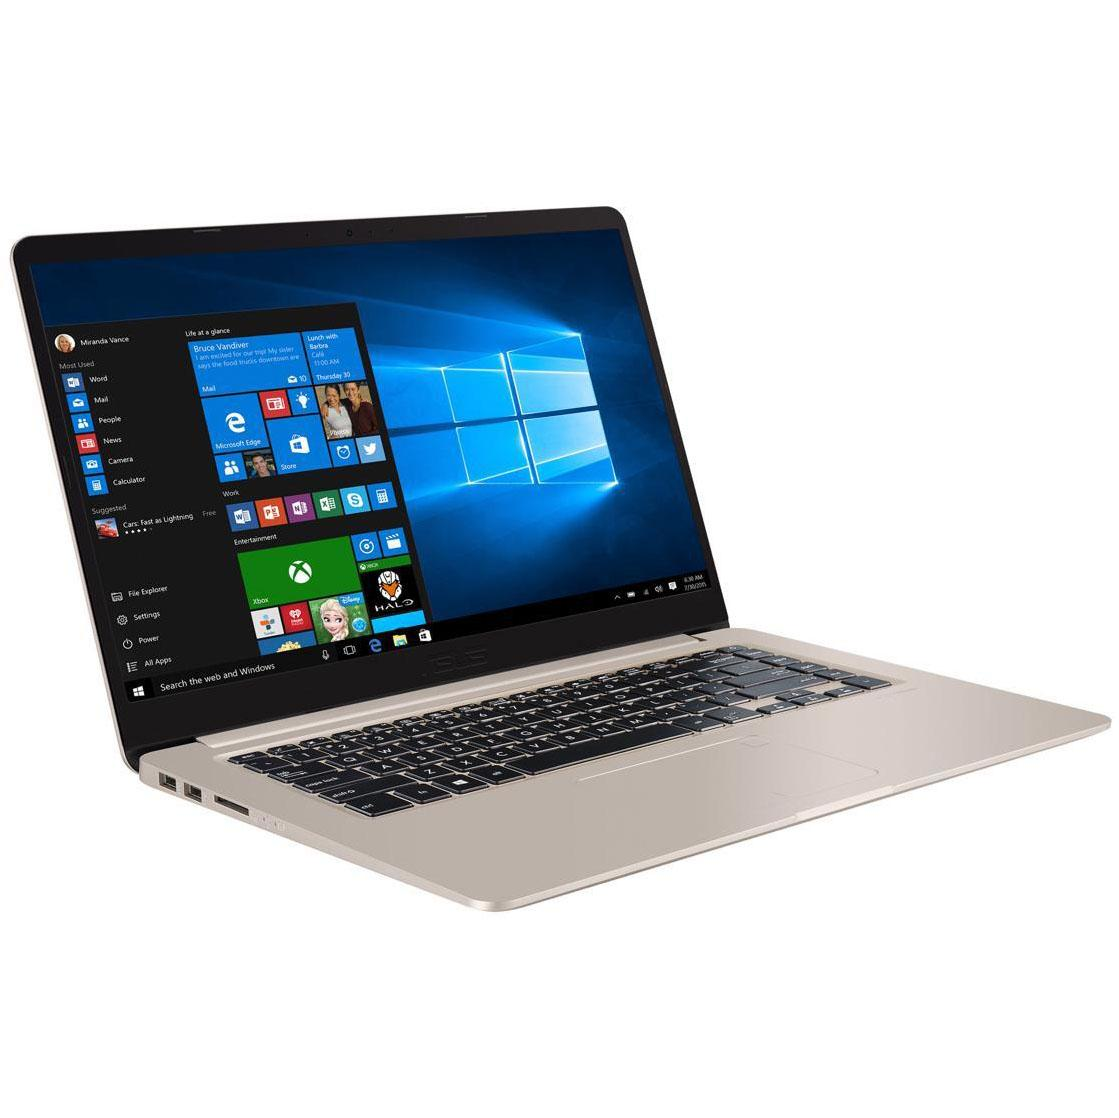 Asus Vivobook S 15.6in i5 8GB Ultra-Thin Laptop